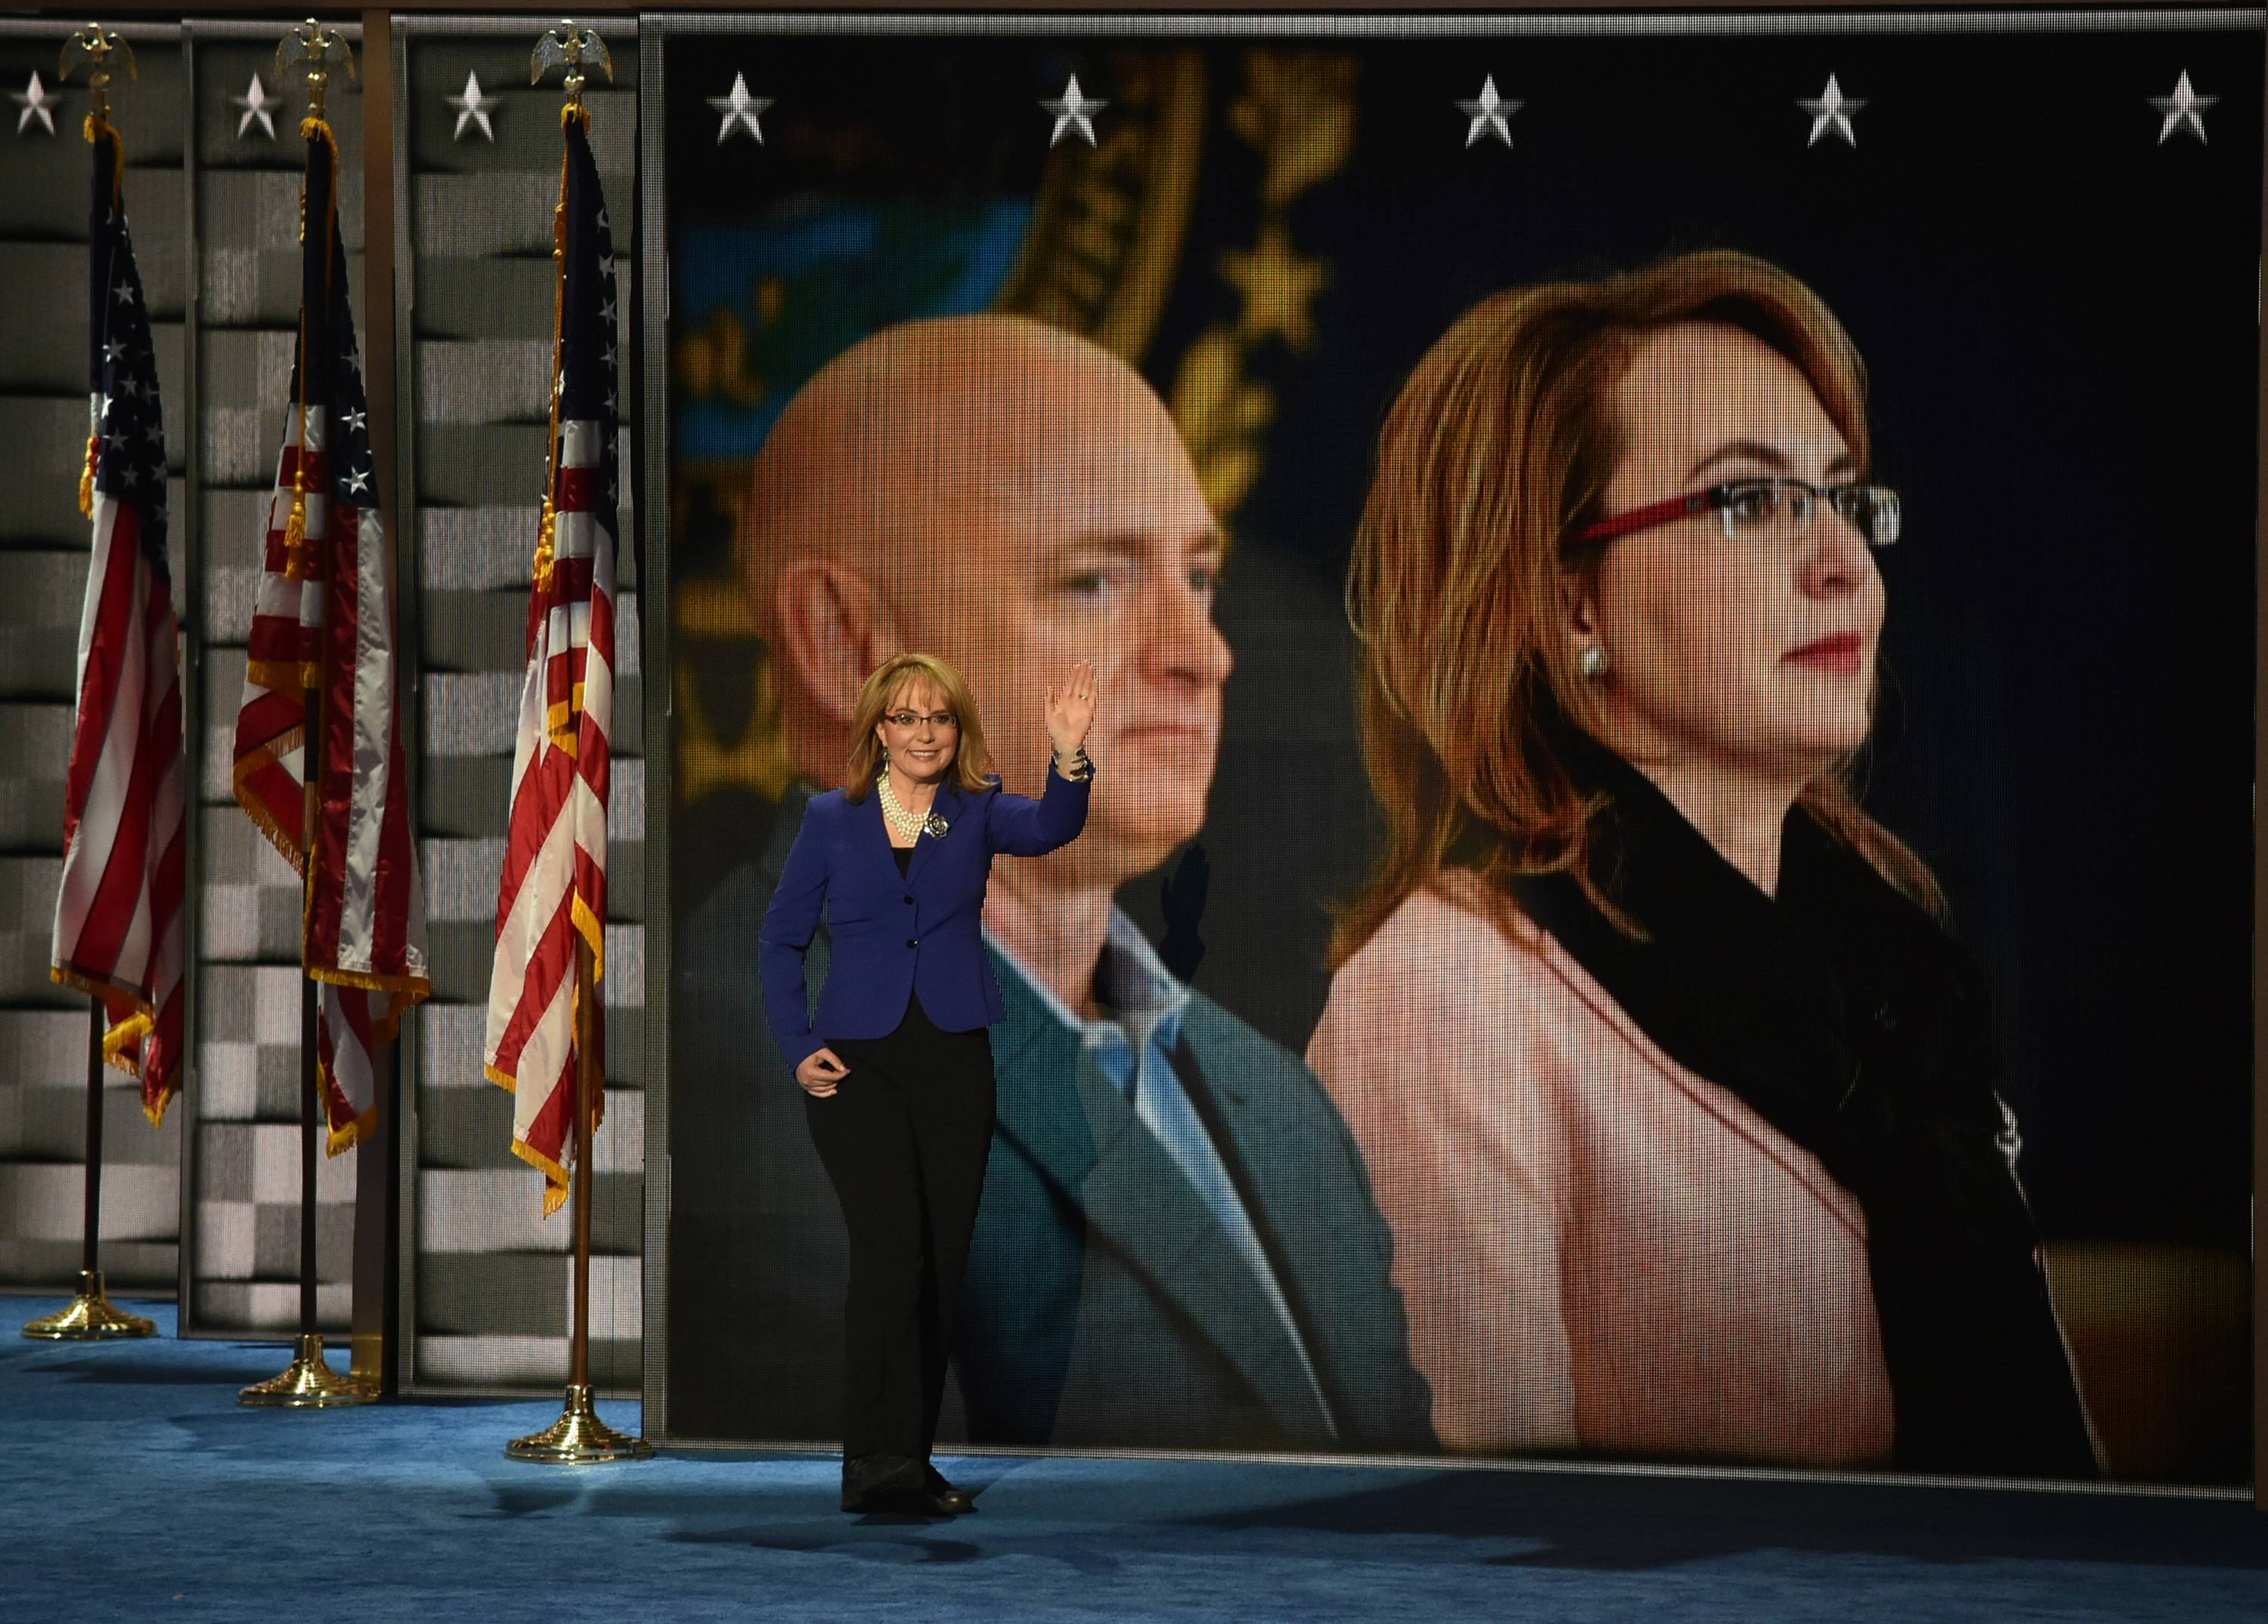 Former Rep.Gabby Giffords walks to the podium during the third day of the Democratic National Convention.